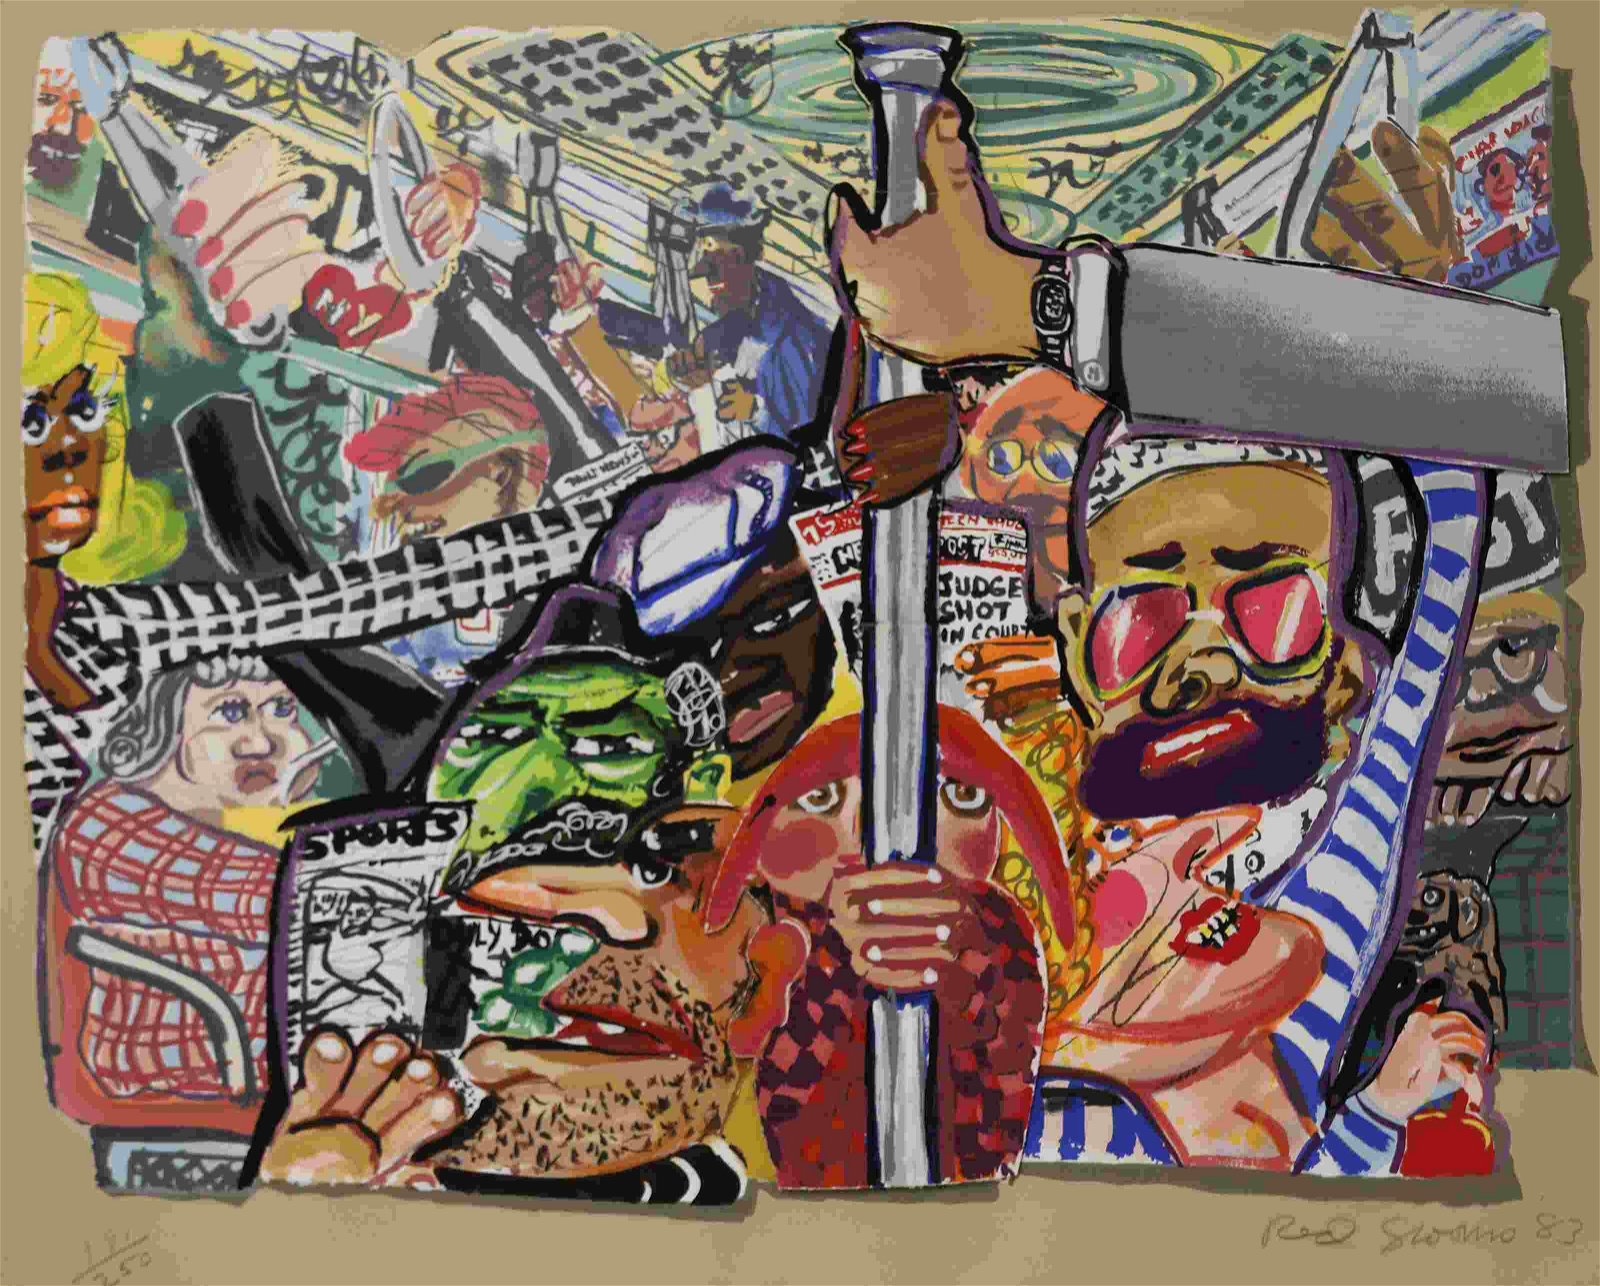 """Red Grooms """"Subway Riders"""" Die-cut Lithograph"""